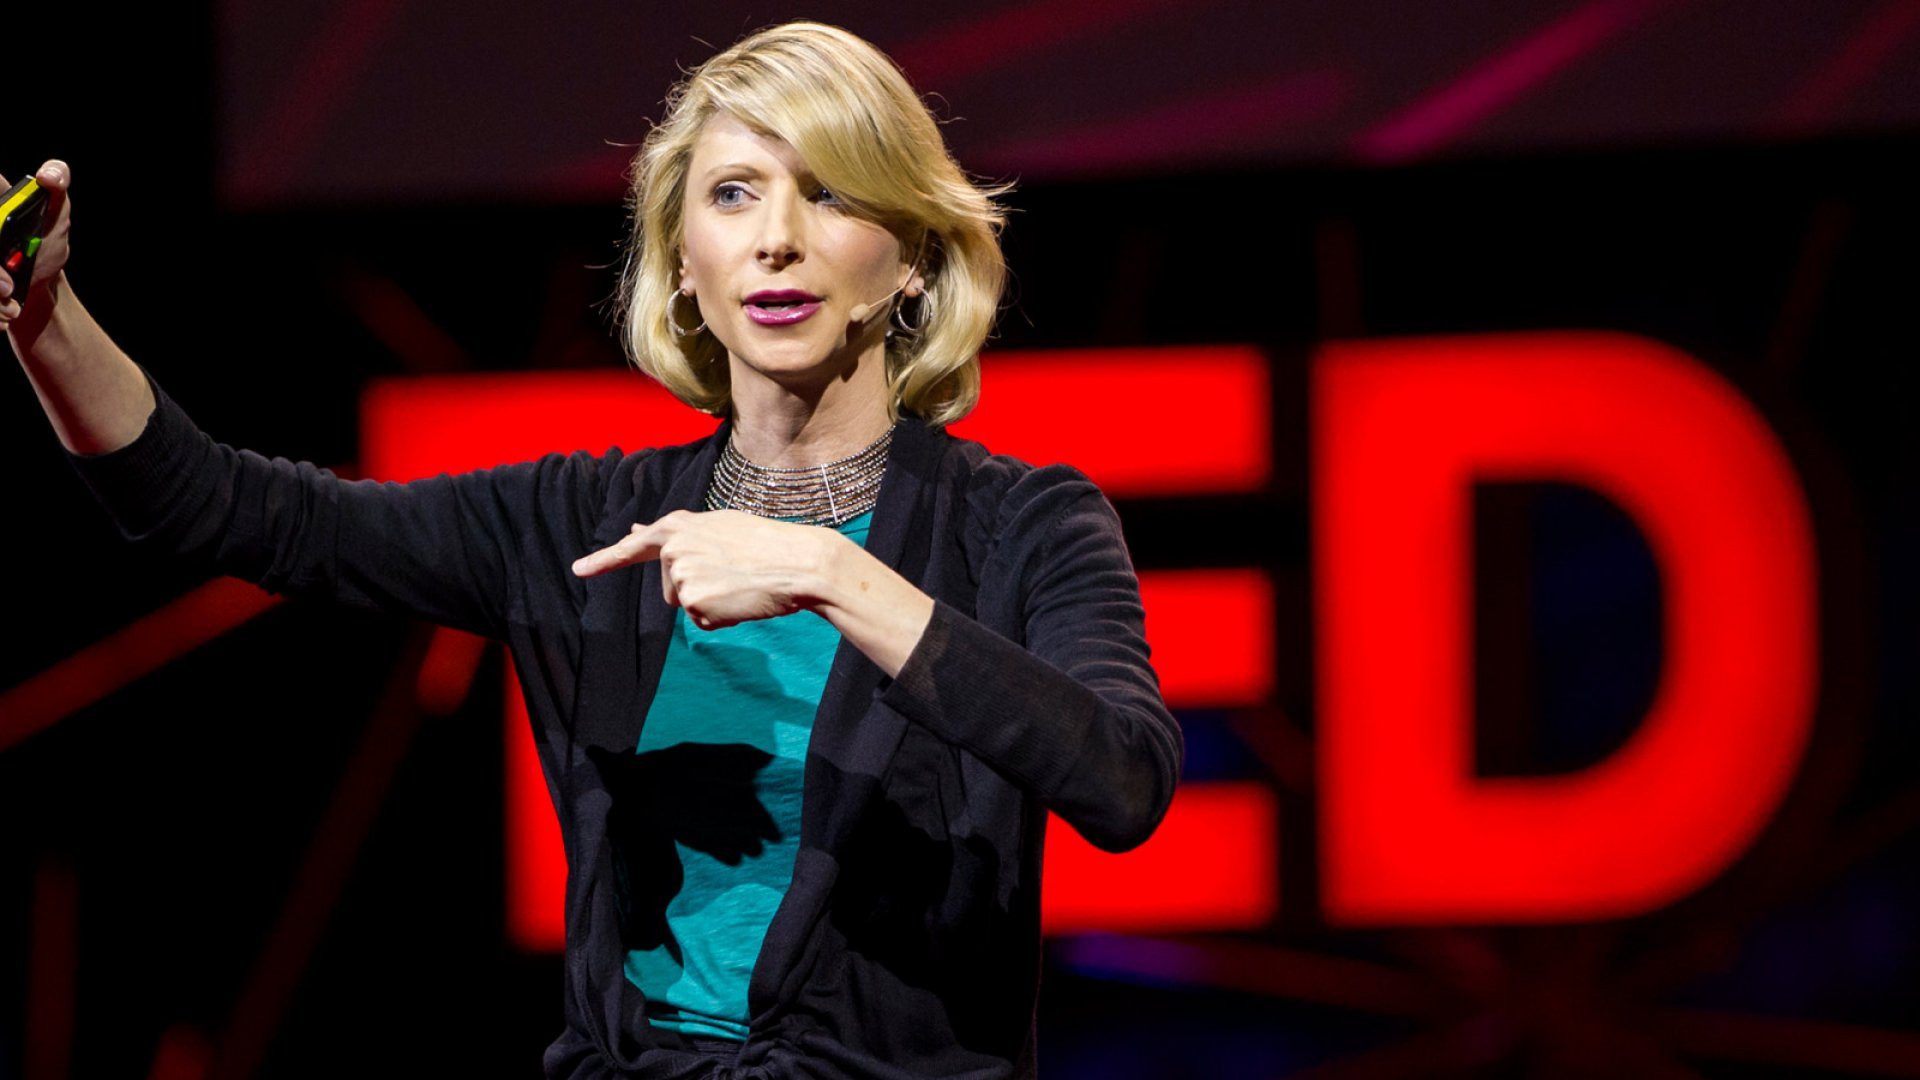 Amy Cuddy, social psychologist, speaks during Session 8: Talk to Strangers, at TEDGlobal 2012 on Thursday, June 28, in Edinburgh, Scotland.